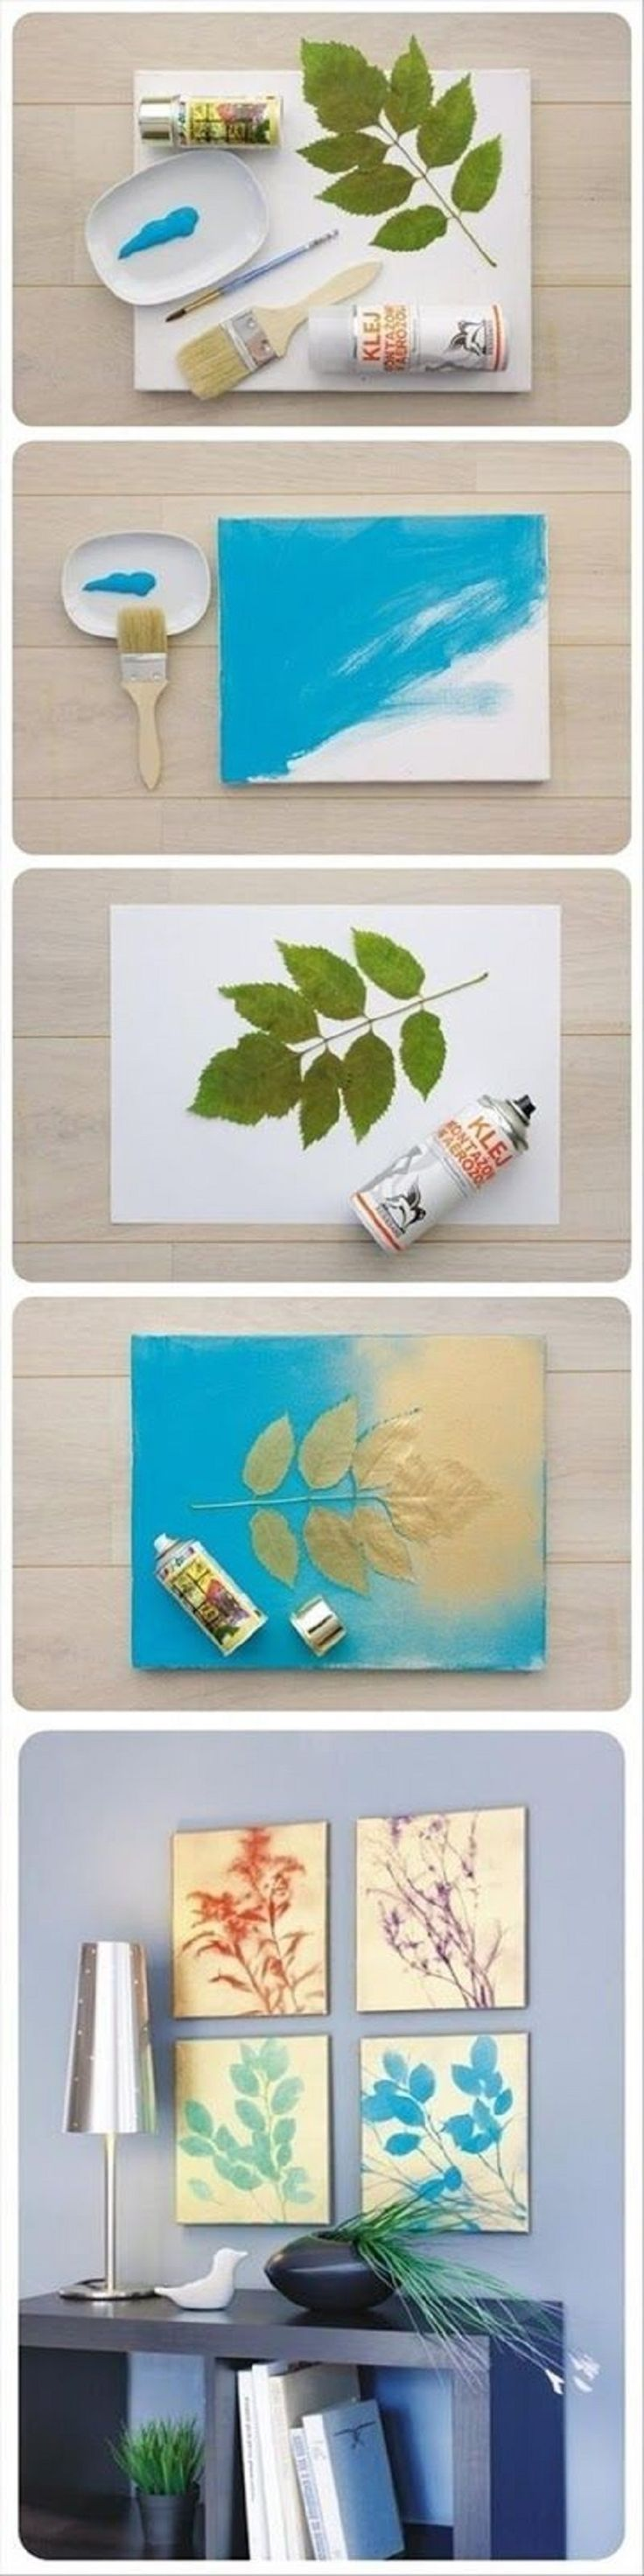 Simple Natural DIY Wall Art With Natural Motifs - 15 Most PINteresting DIY Paper Decorations | GleamItUp